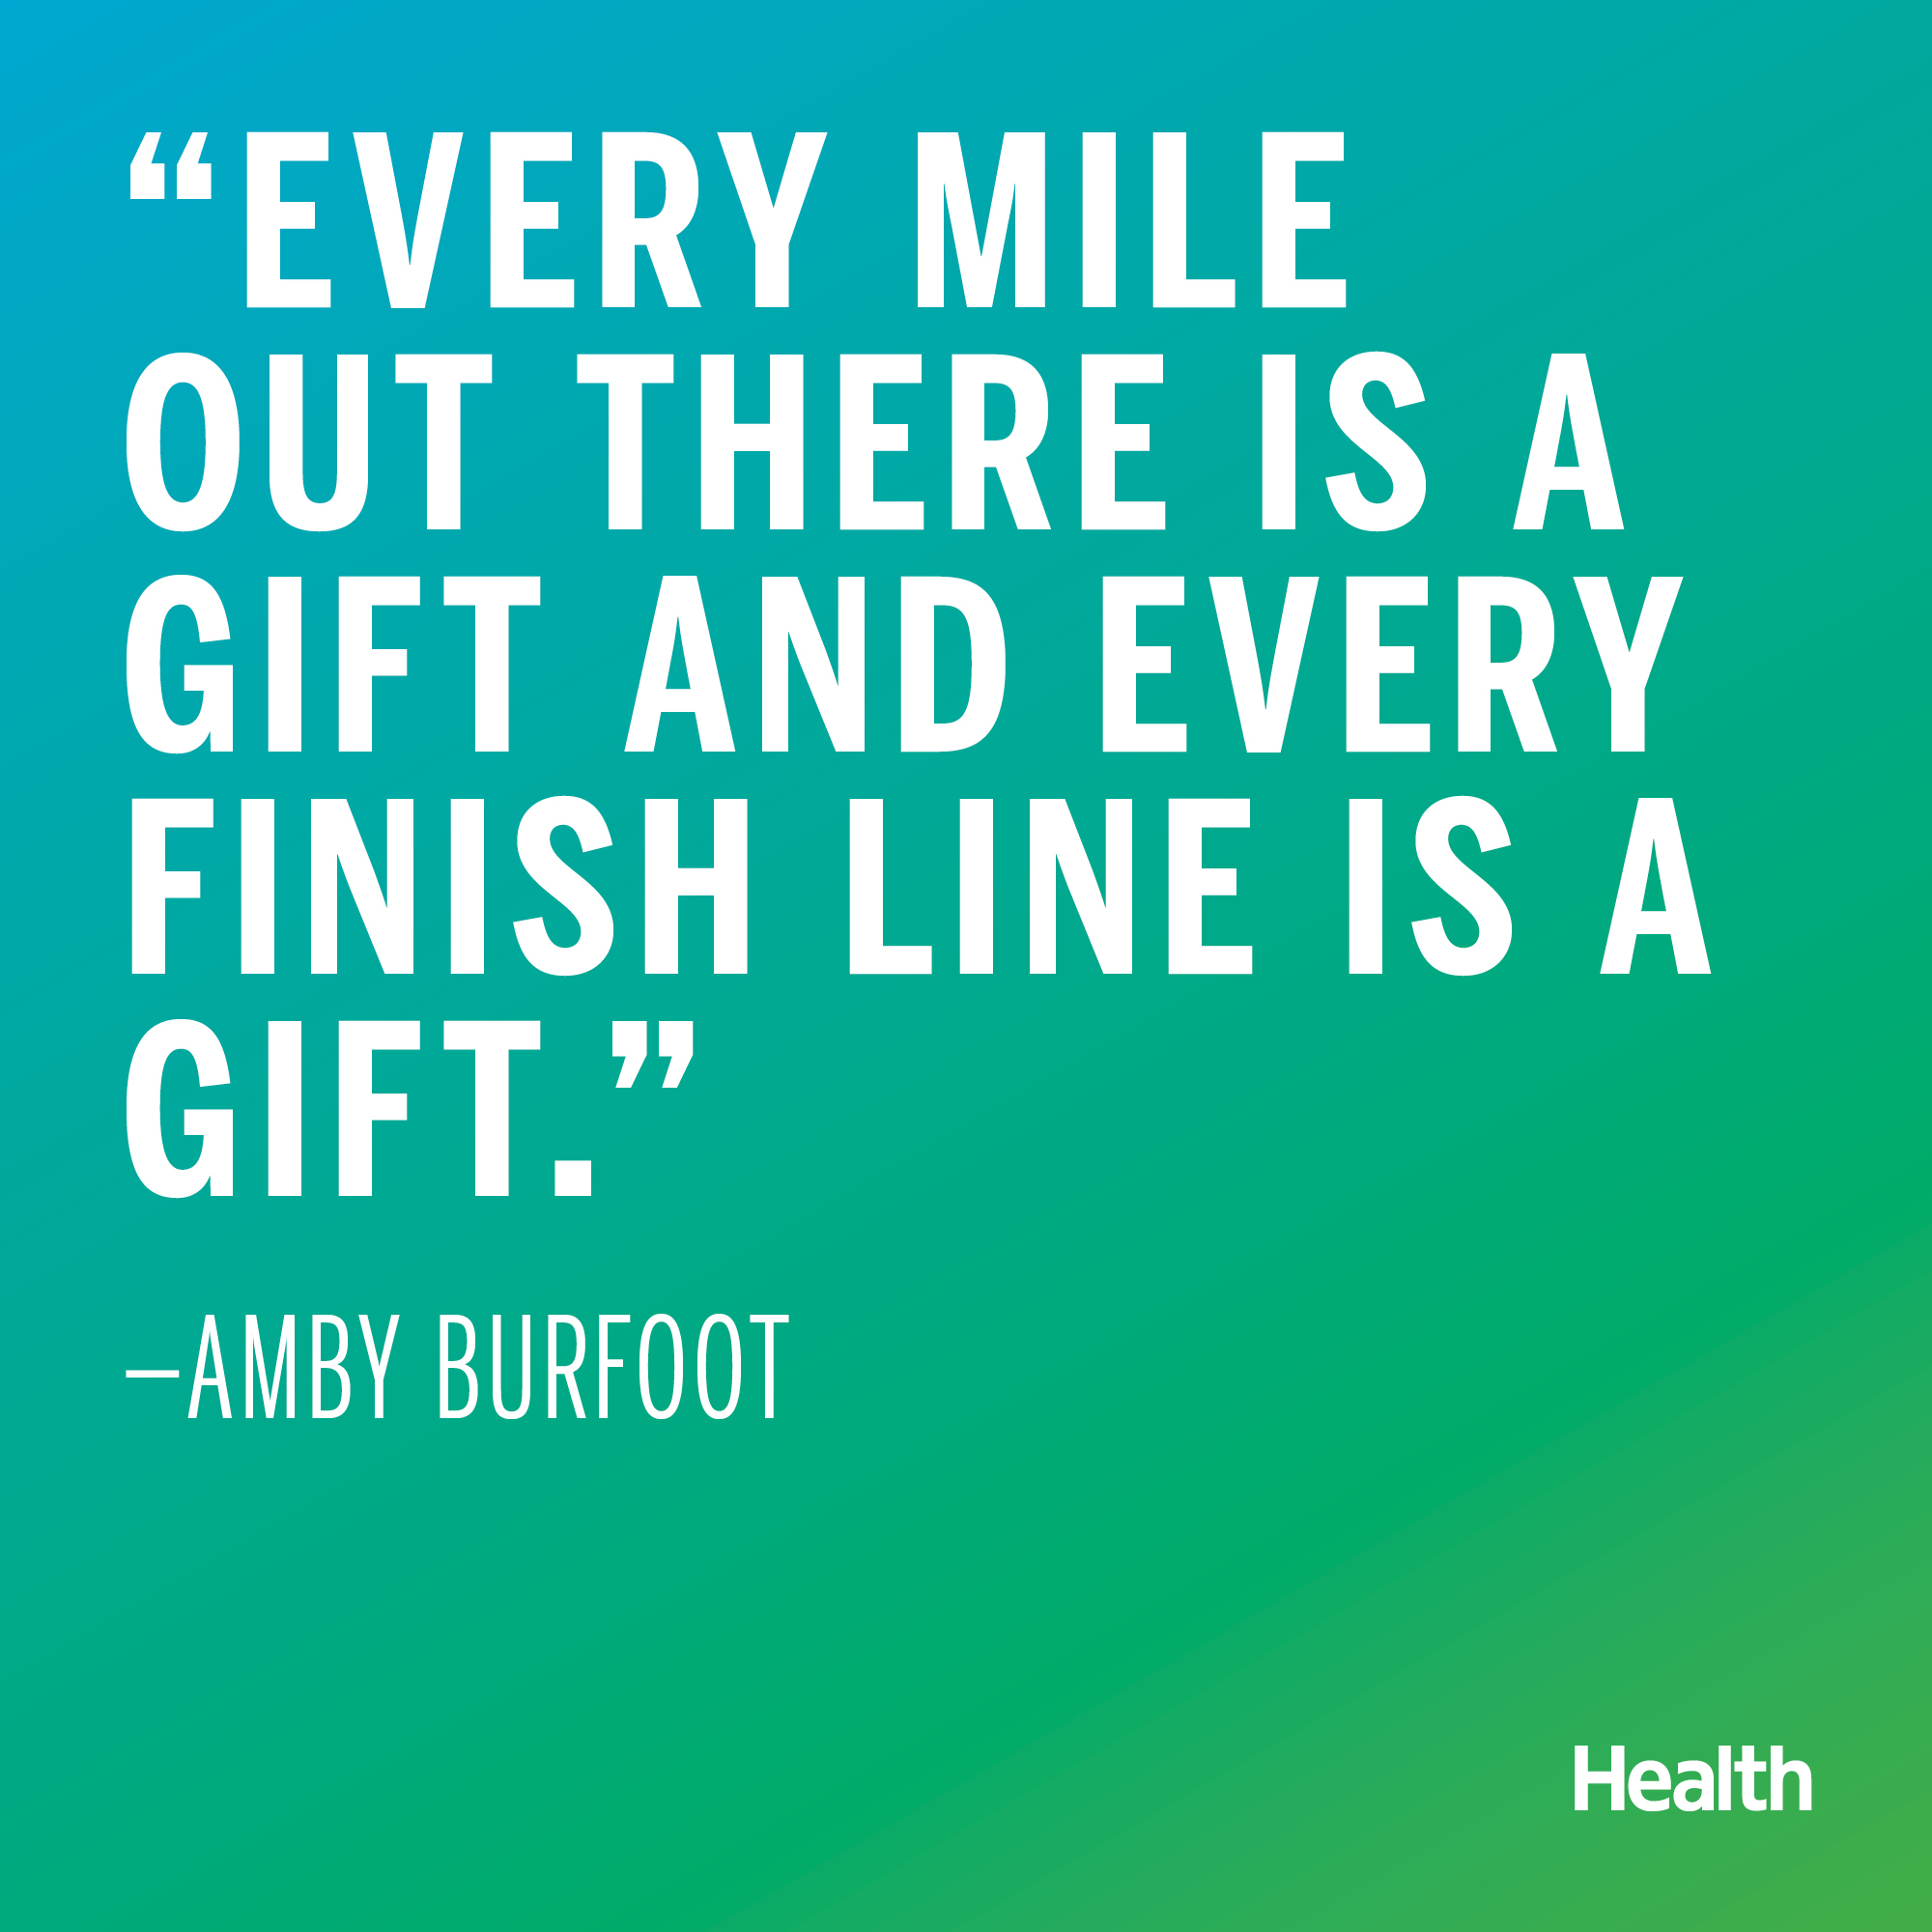 amby-burfoot-inspirational-quote